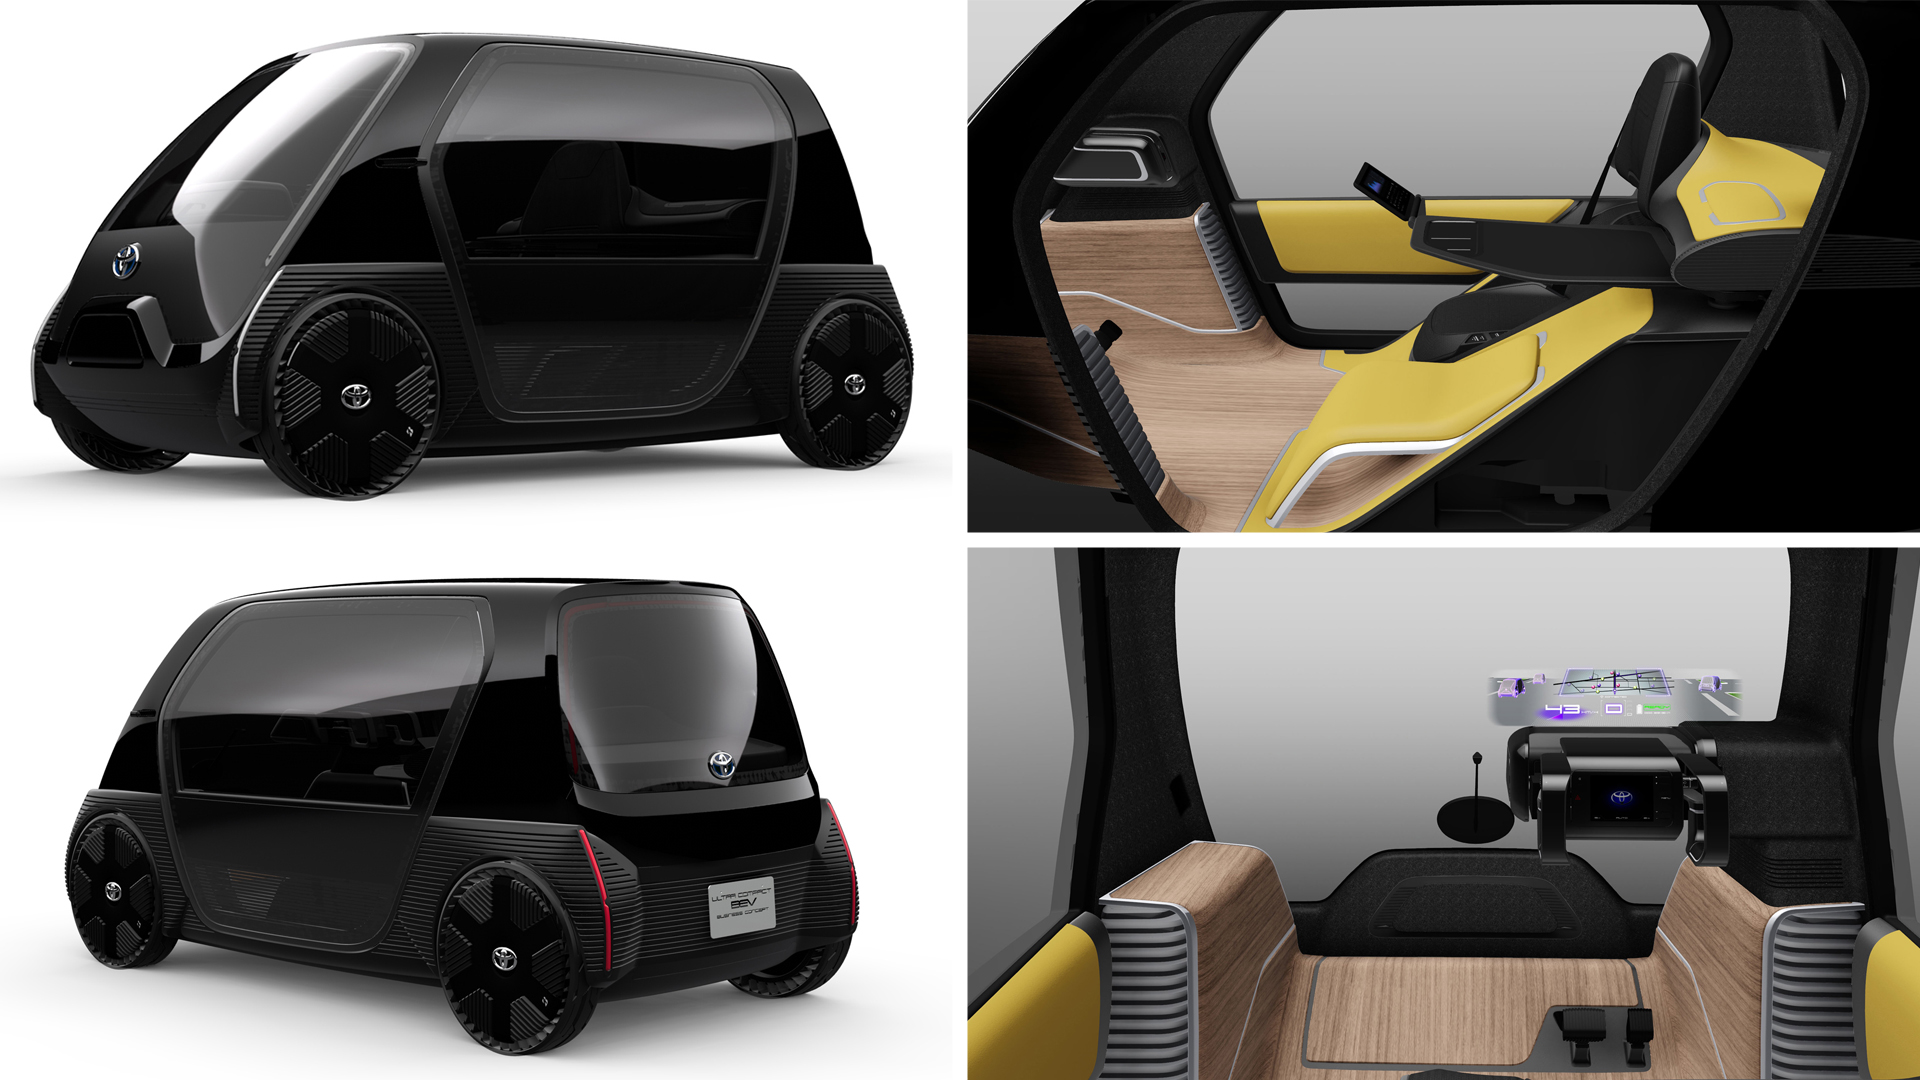 Ultra-compact BEV Concept Model for Business